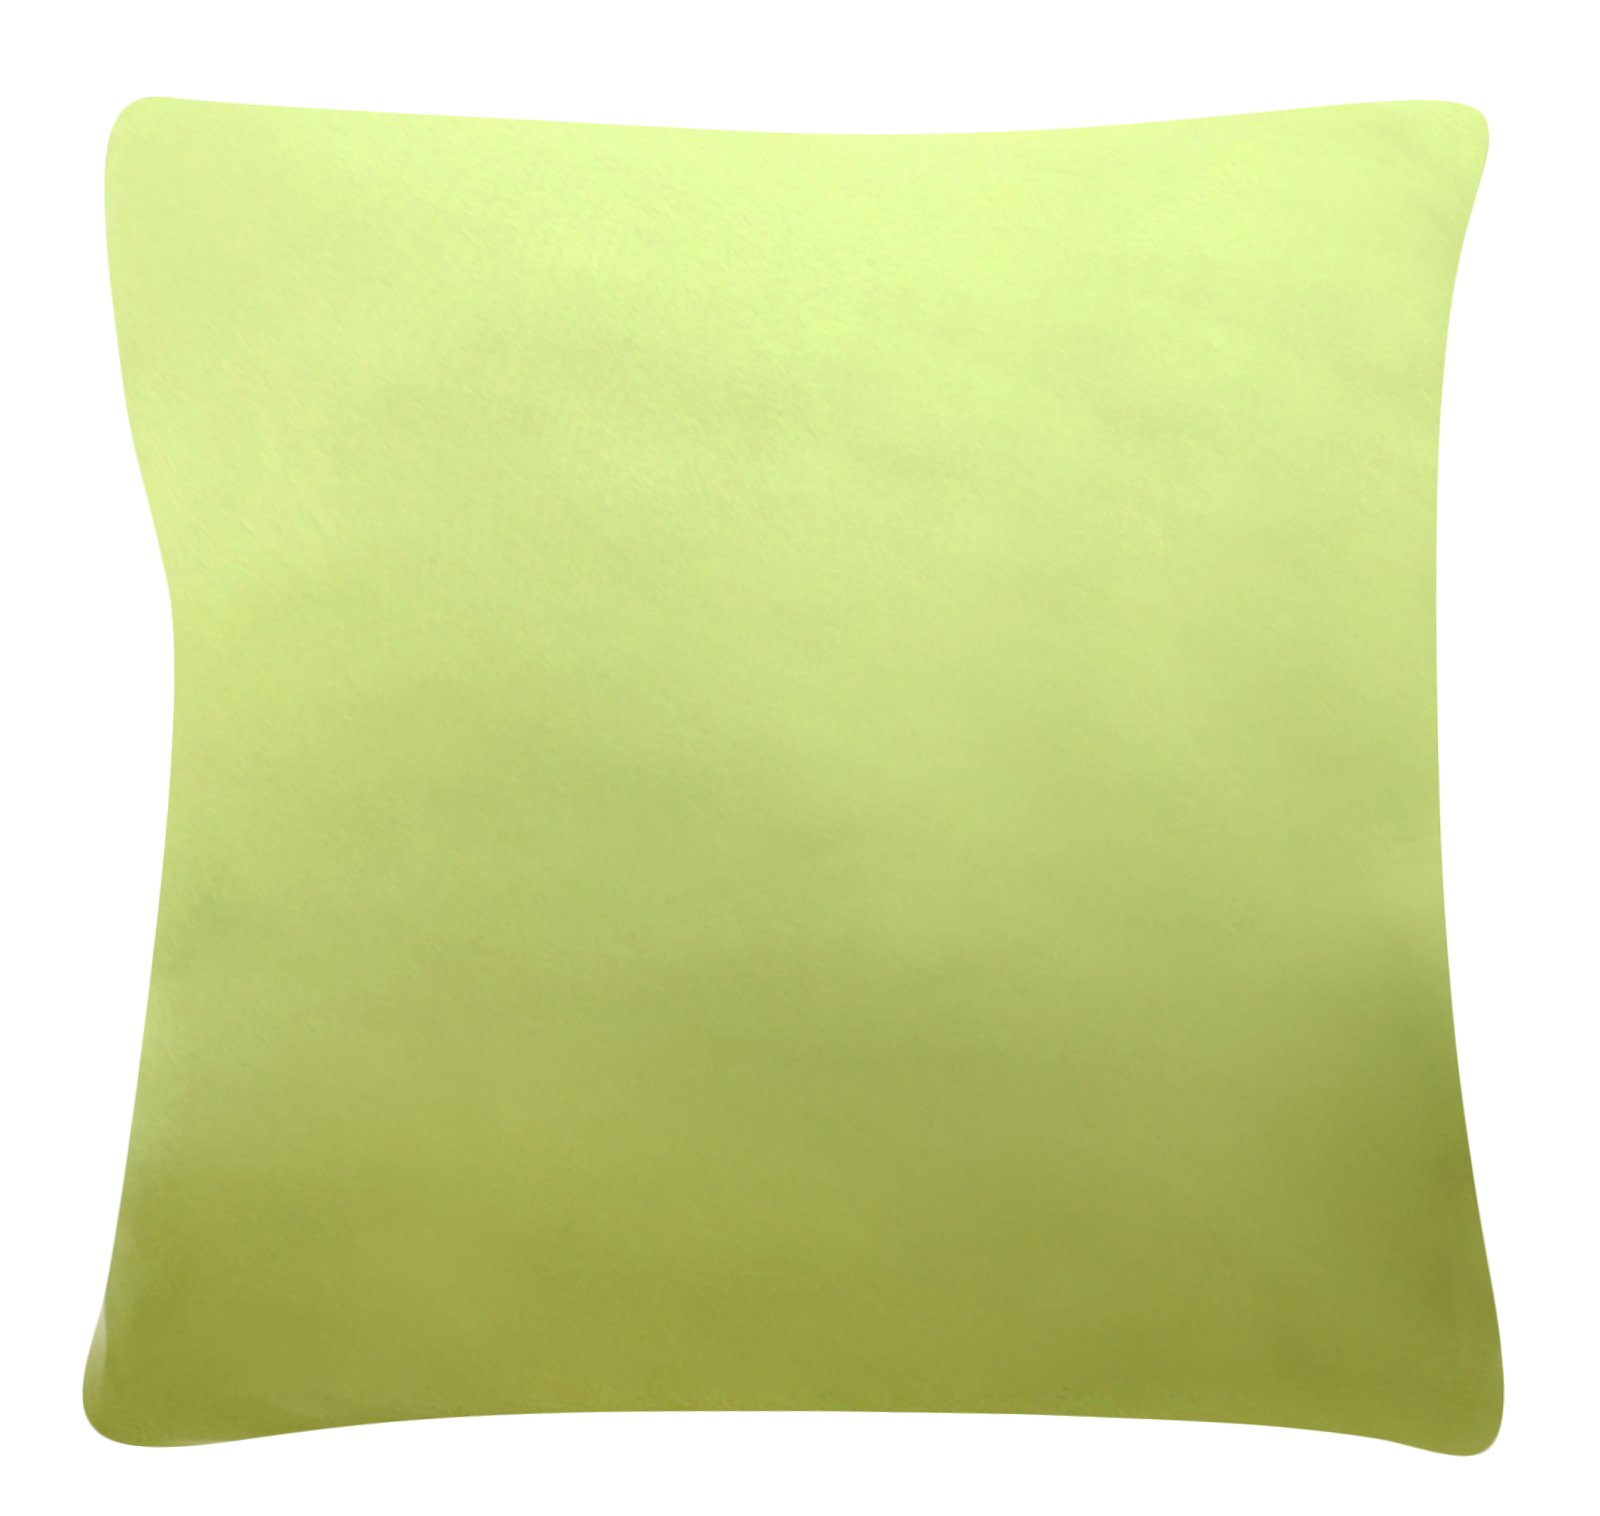 Lushomes Poly Pillow Insert Square Green Cushion Filler 16'' x 16'' - Packs Available by LUSHOMES